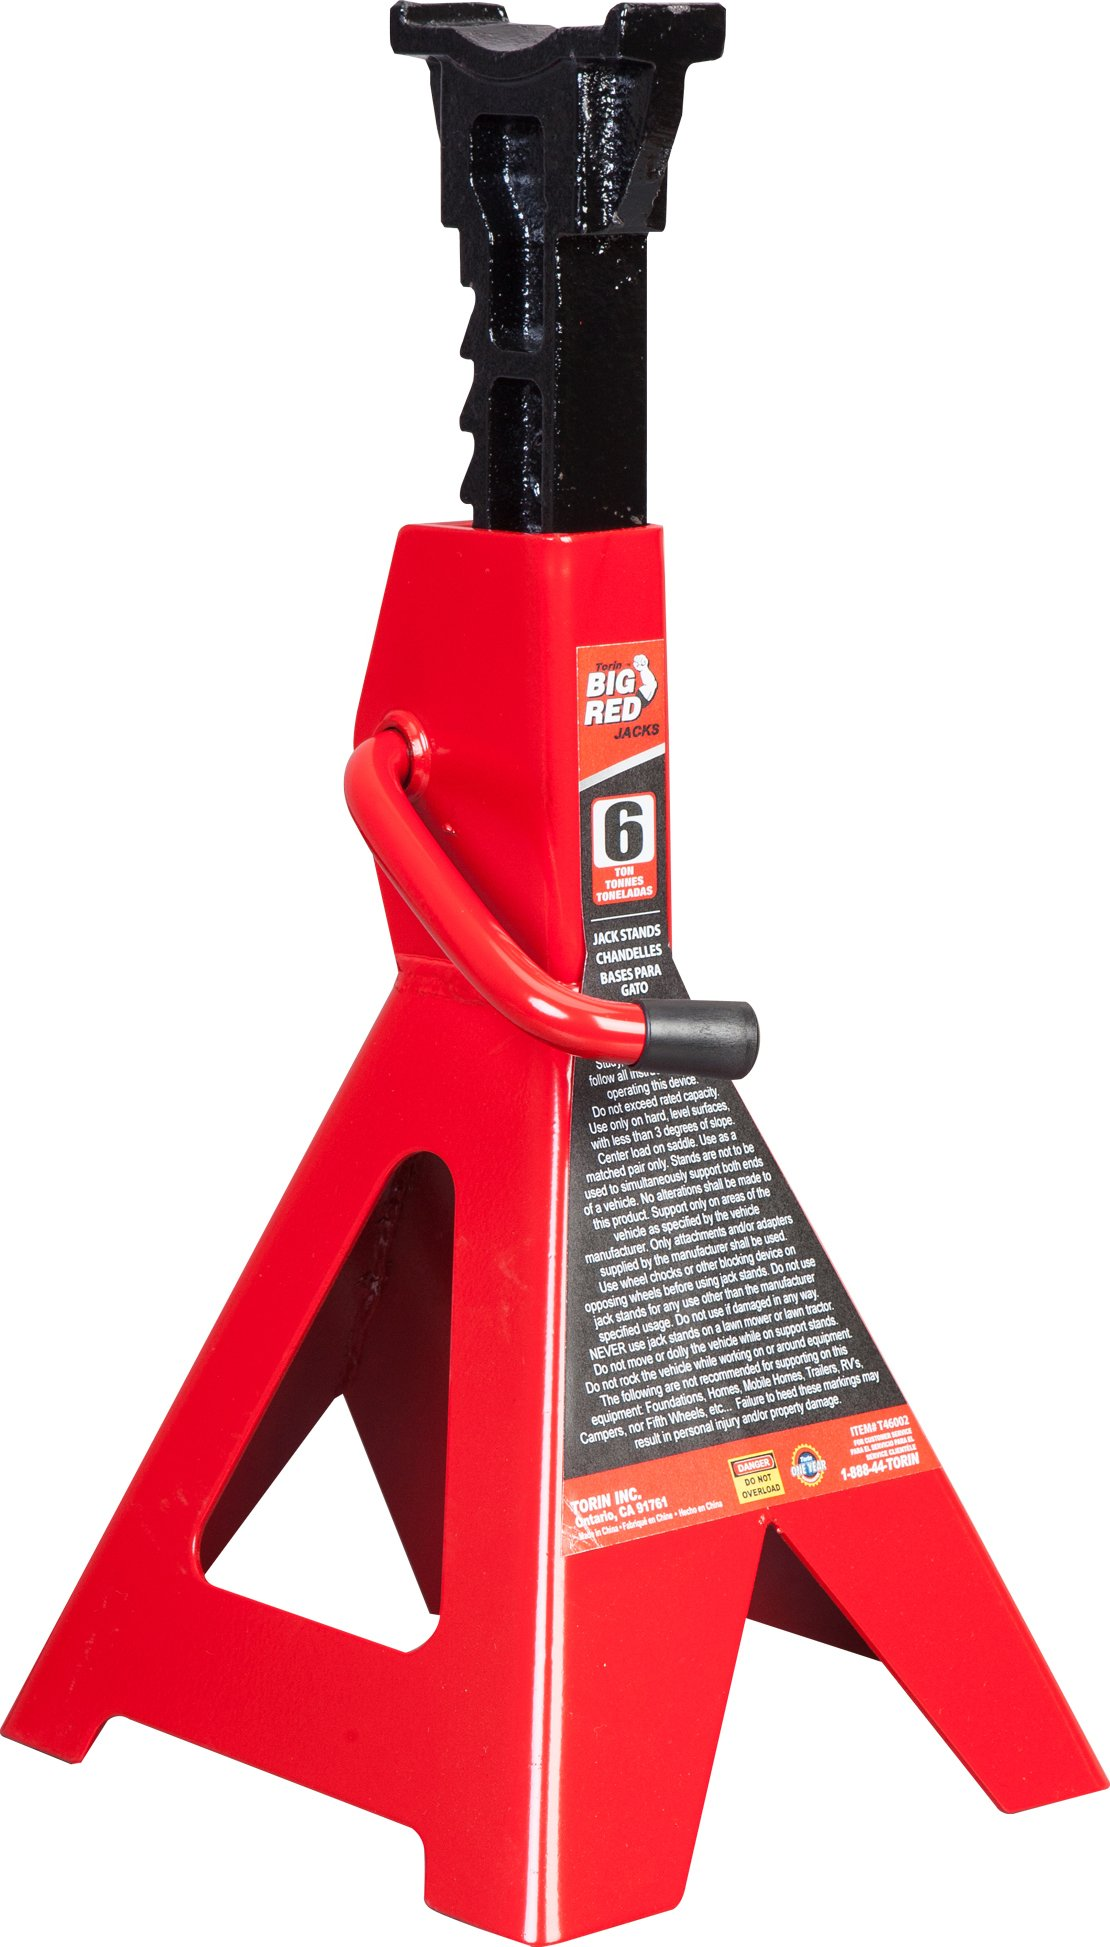 Torin Big Red Steel Jack Stand: 6 Ton Capacity, Single Jack by Torin (Image #13)